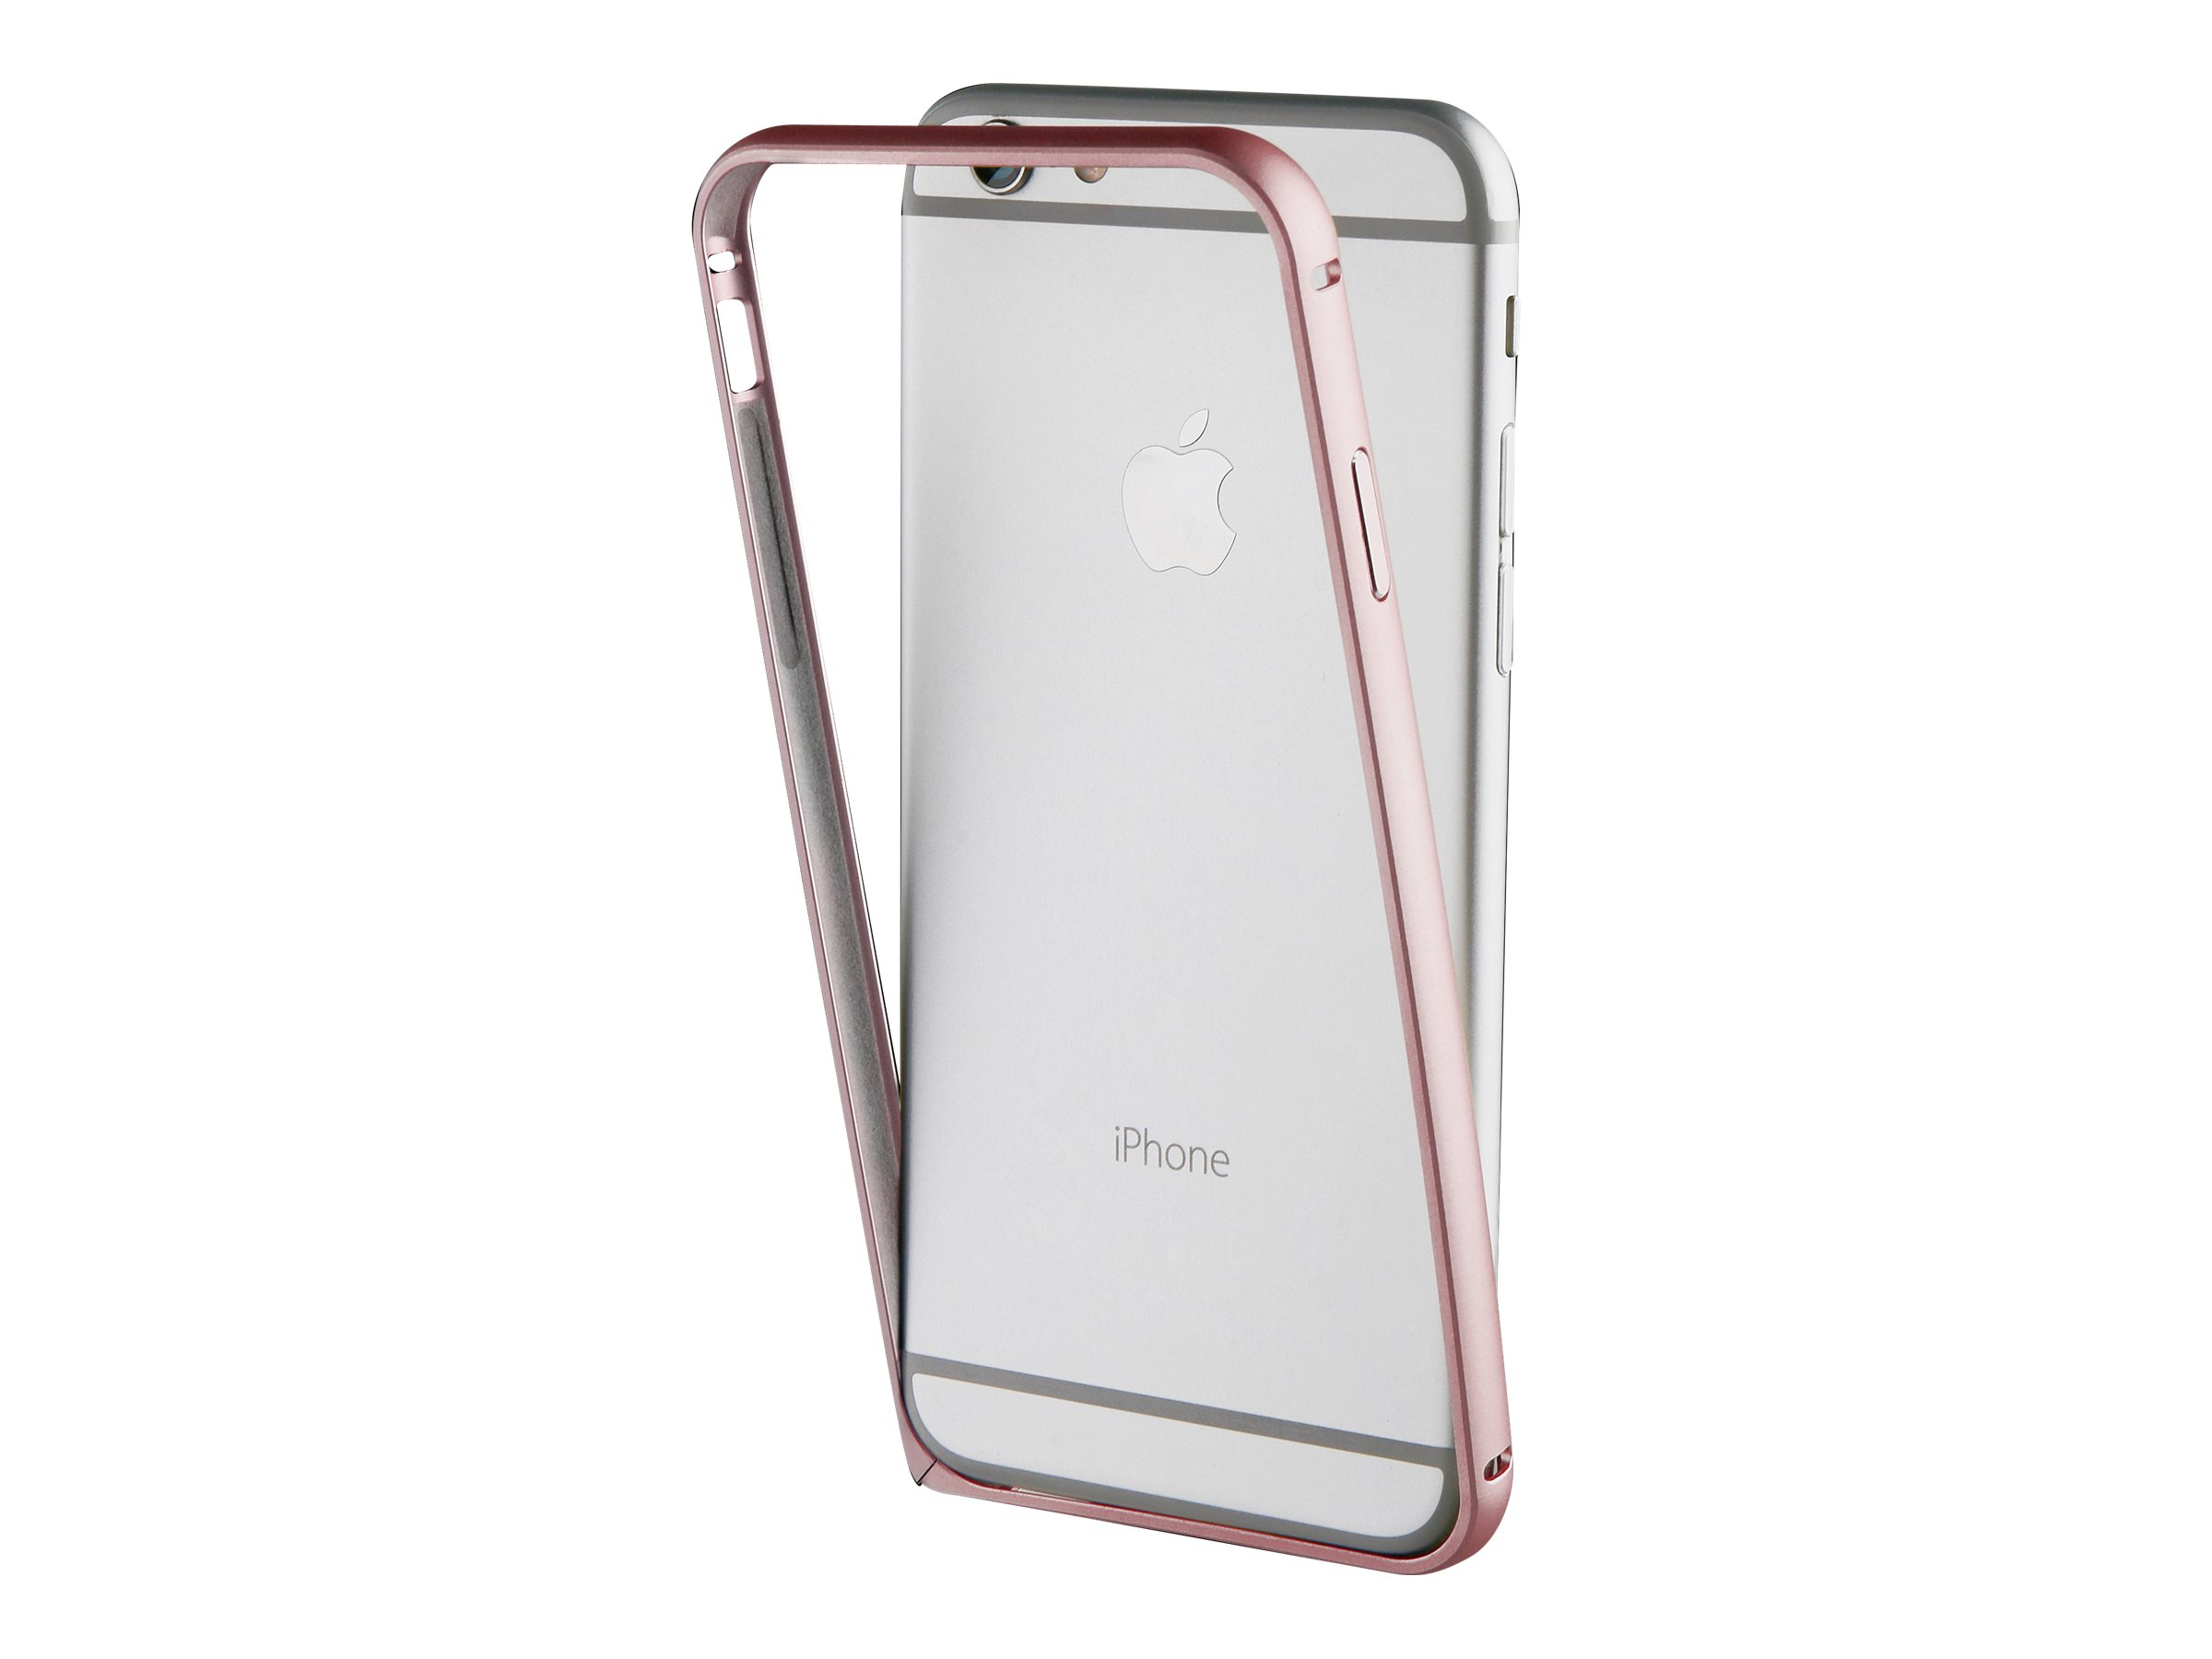 Muvit - coque pare-chocs pour iPhone 7 - or rose